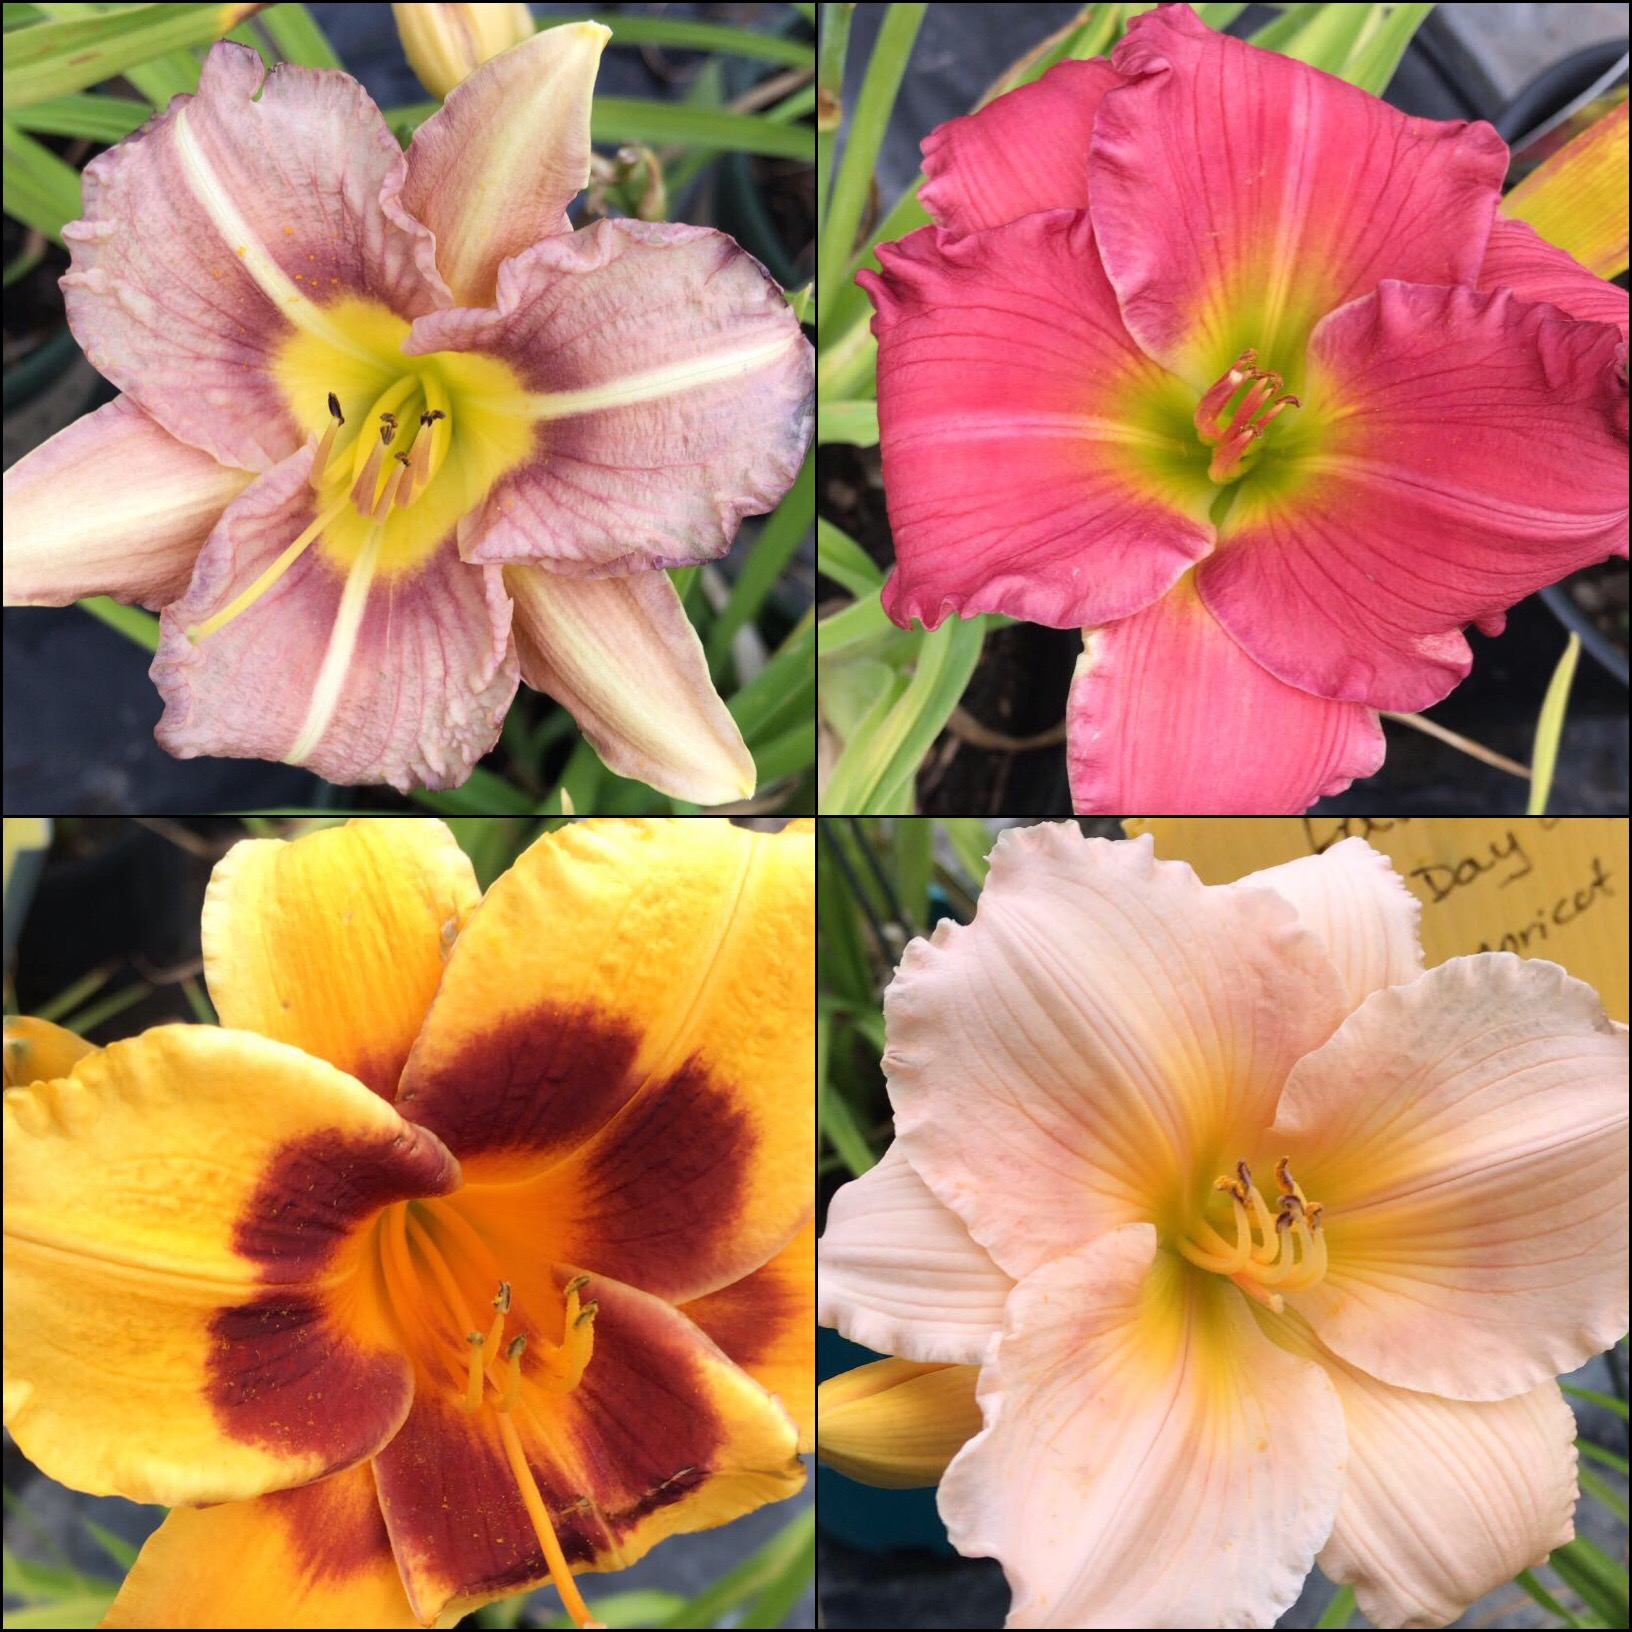 Many varieties of daylilies available at Natural Plus Nursery